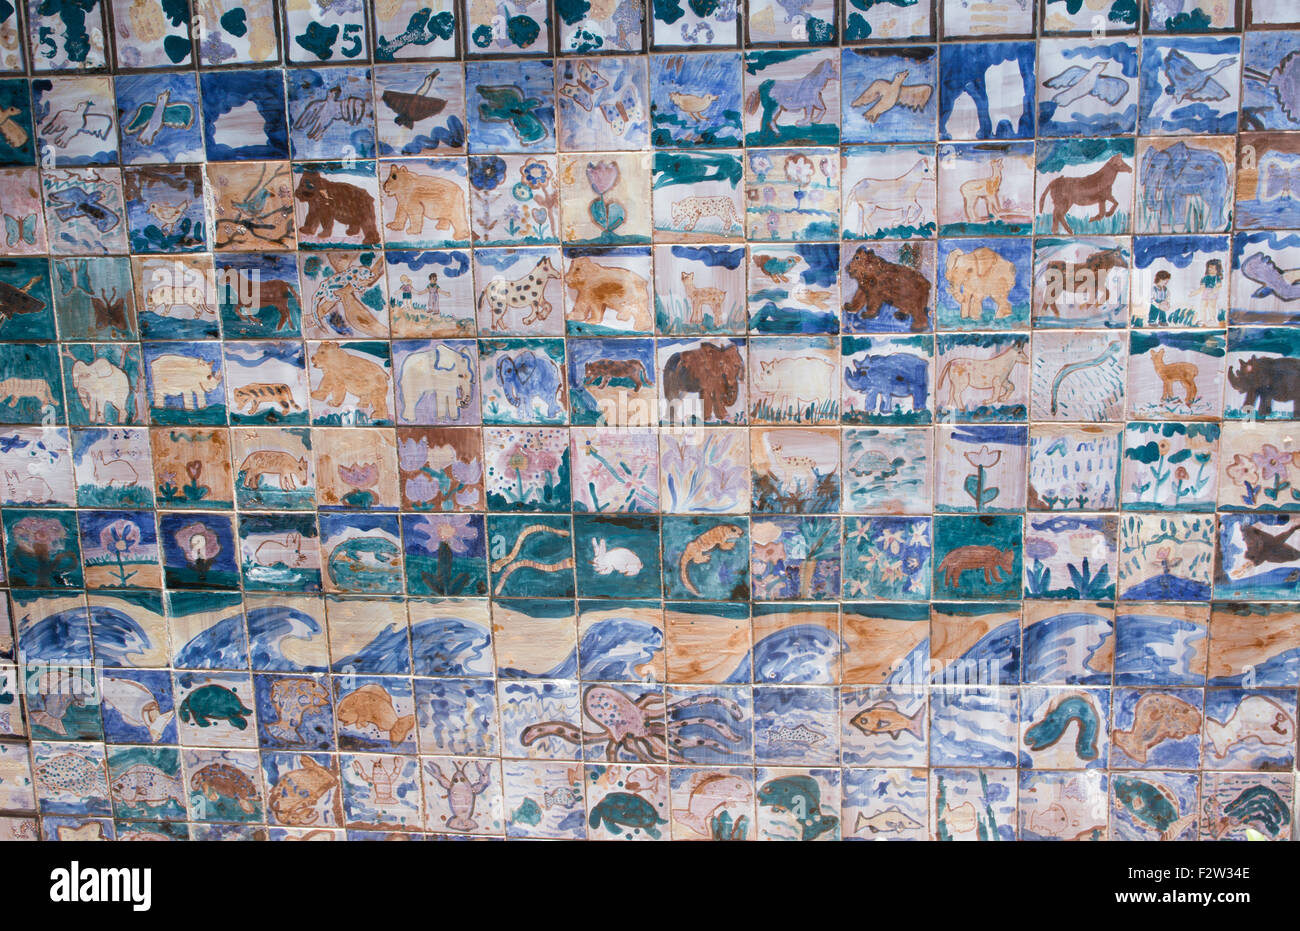 Alexandria Louisiana Children's Peace Wall 1987 tiles painted by small children in downtown - Stock Image